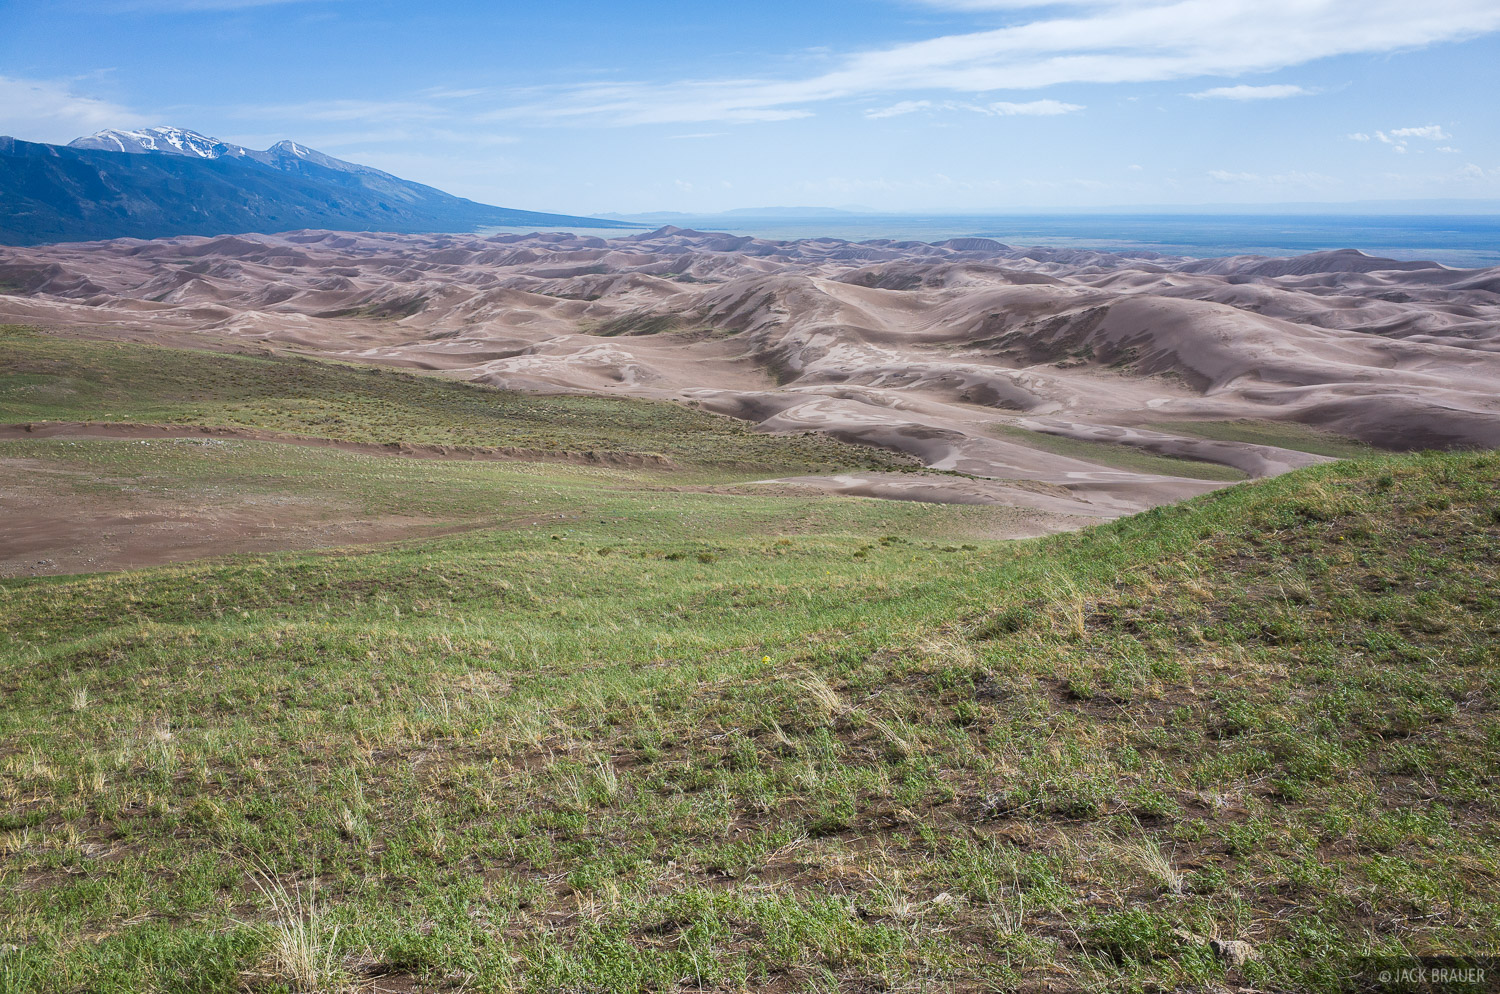 Grassy meadows take root along the northeastern edge of the Great Sand Dunes.